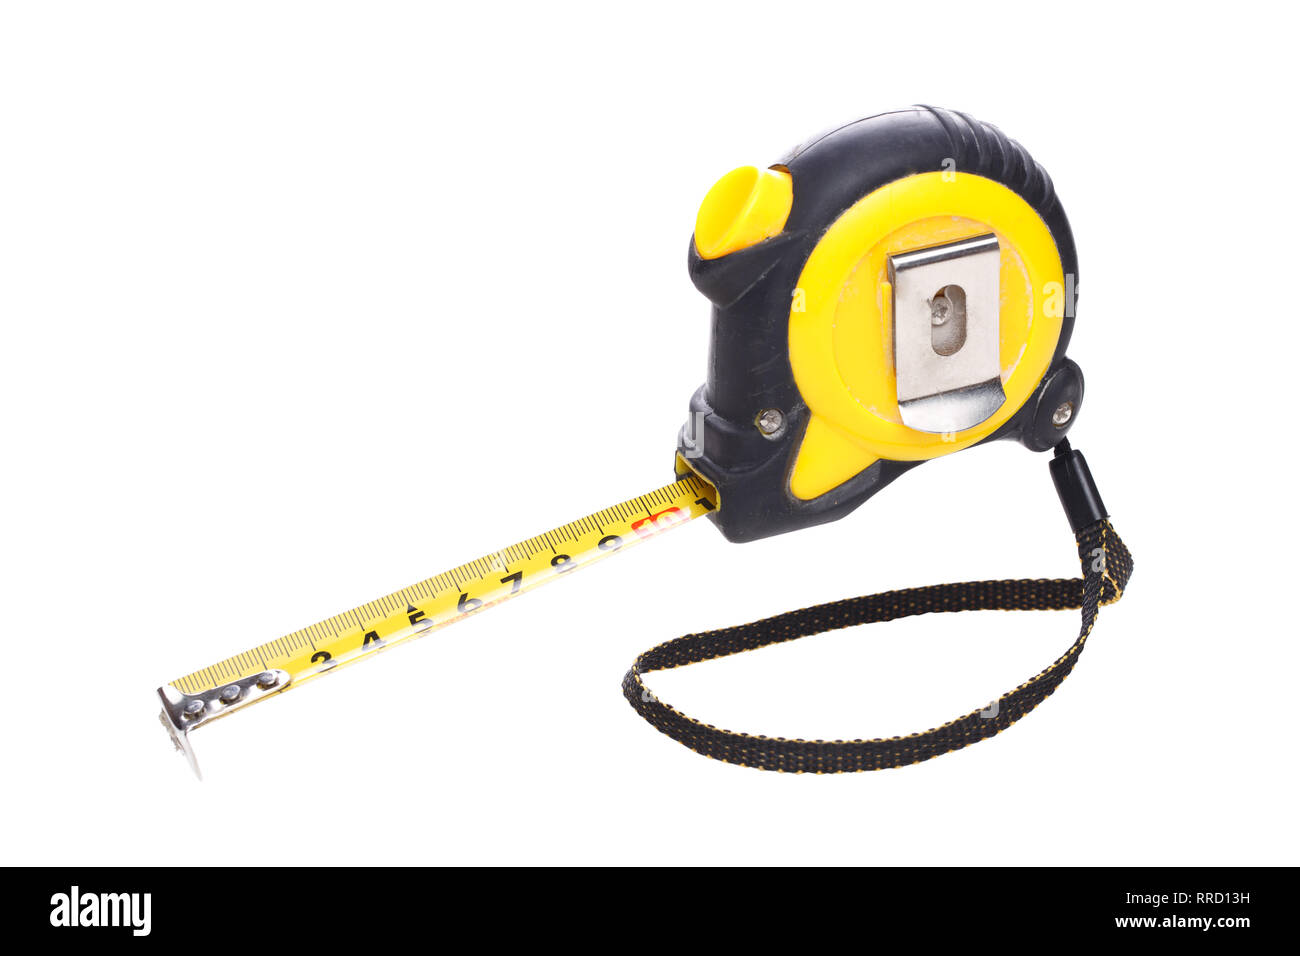 Measuring tape on empty background - Stock Image